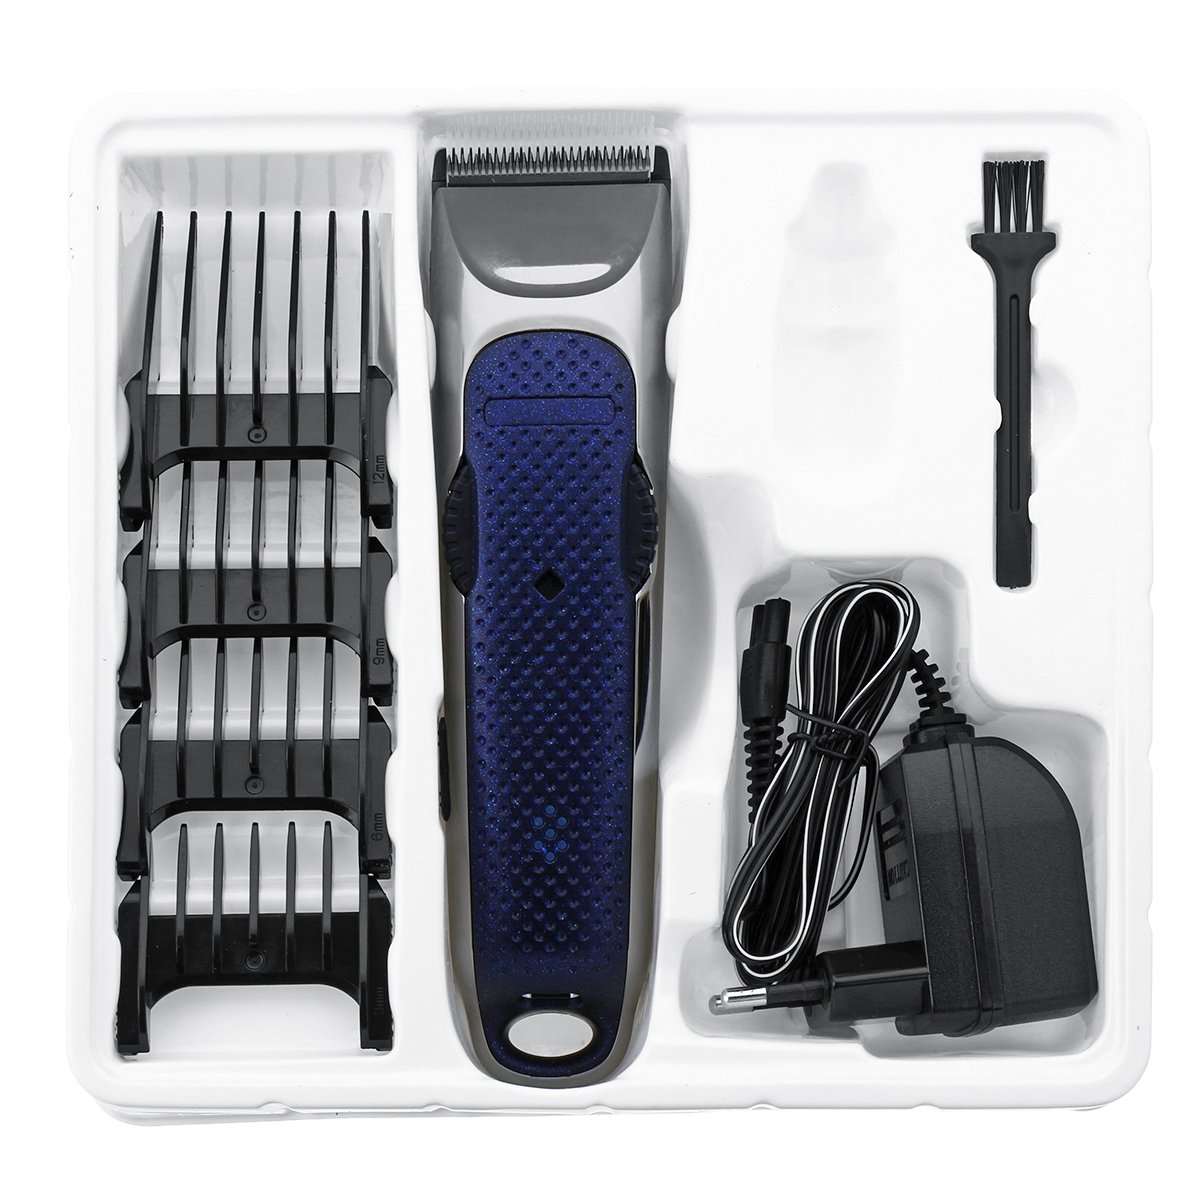 220-240V 50Hz 4 in 1 Rechargeable Waterproof Hair Trimmer Titanium Hair Clipper Electric Hair Trimmer Tools цена